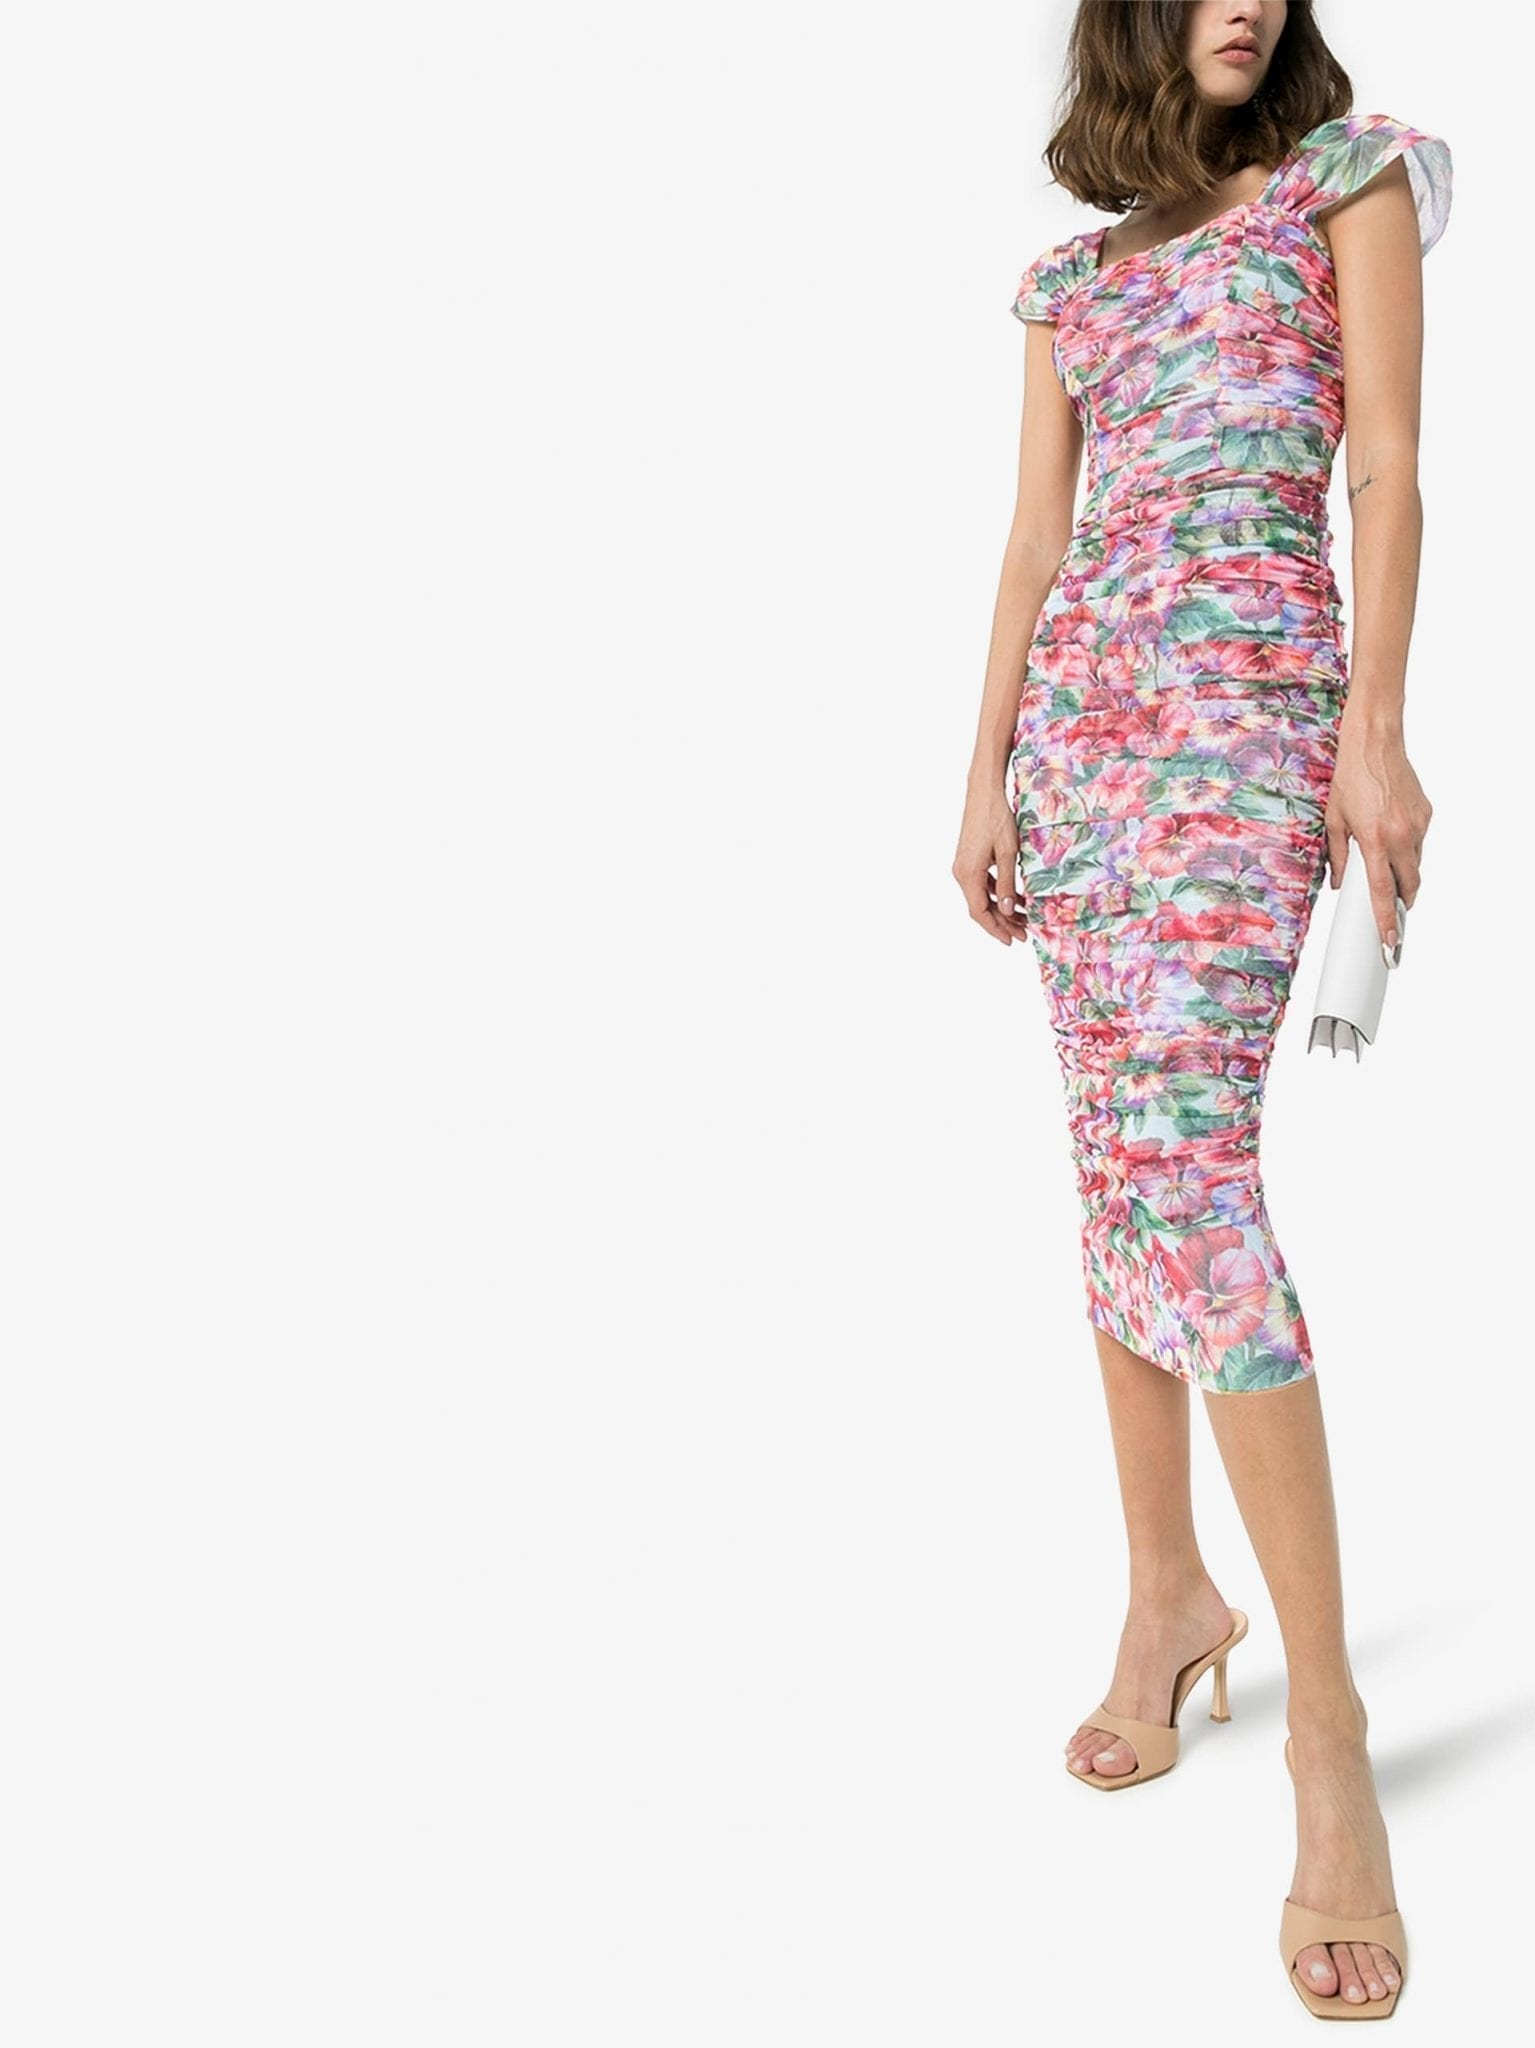 DOLCE & GABBANA Floral Print Ruched Tulle Dress